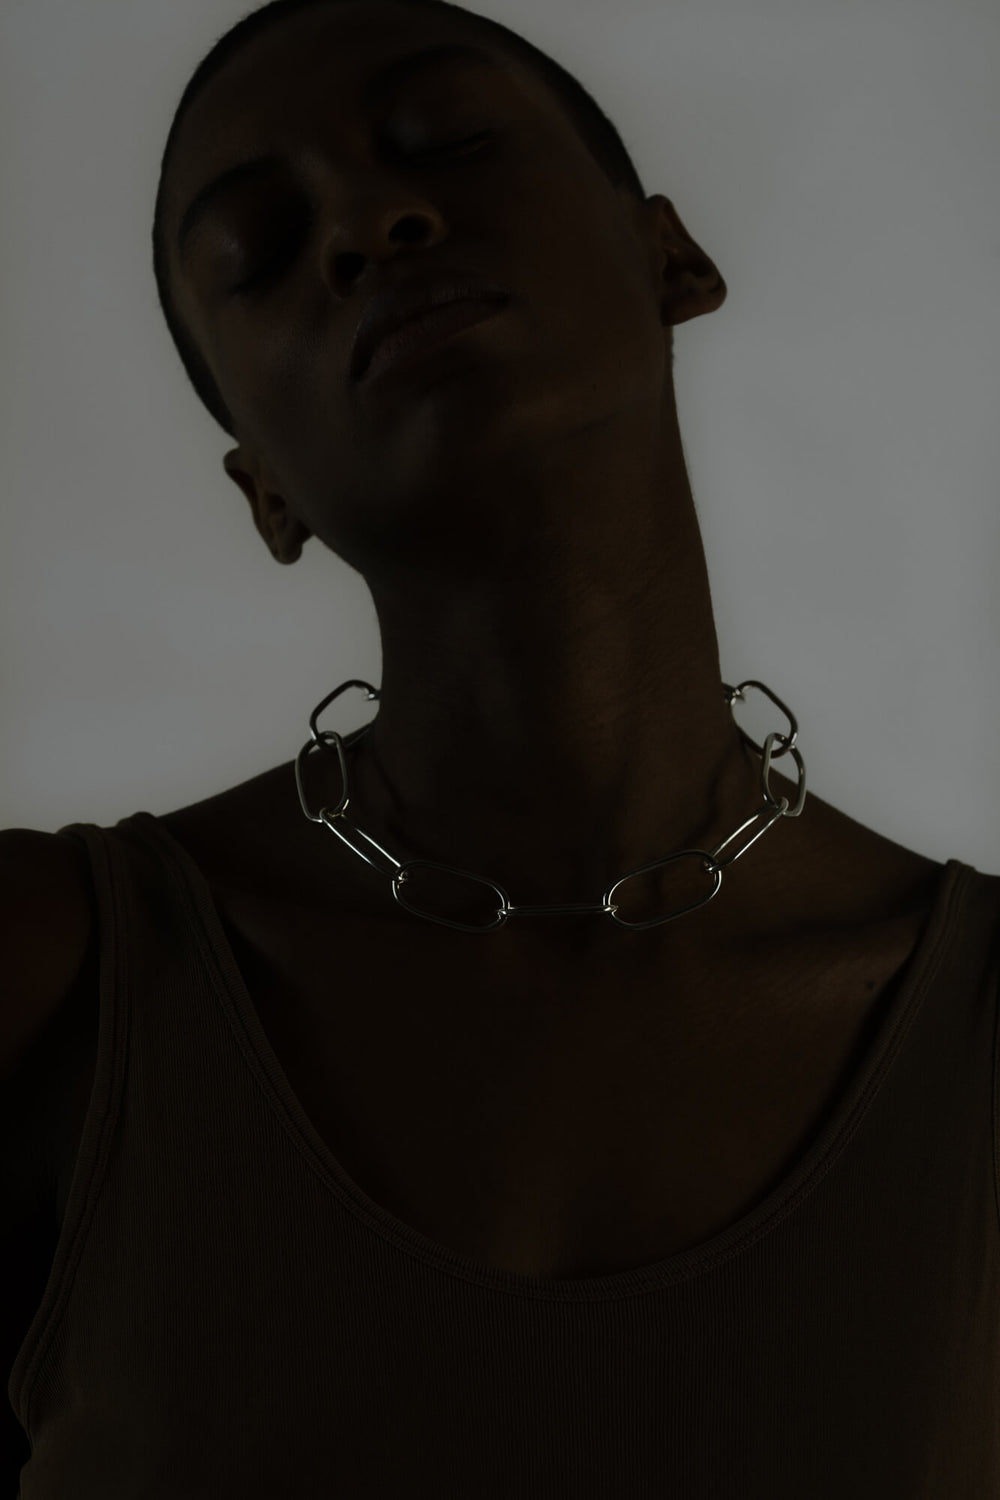 Statement neckpiece made from bold link chains with a high gloss finish. Silver jewelry handmade in Berlin.